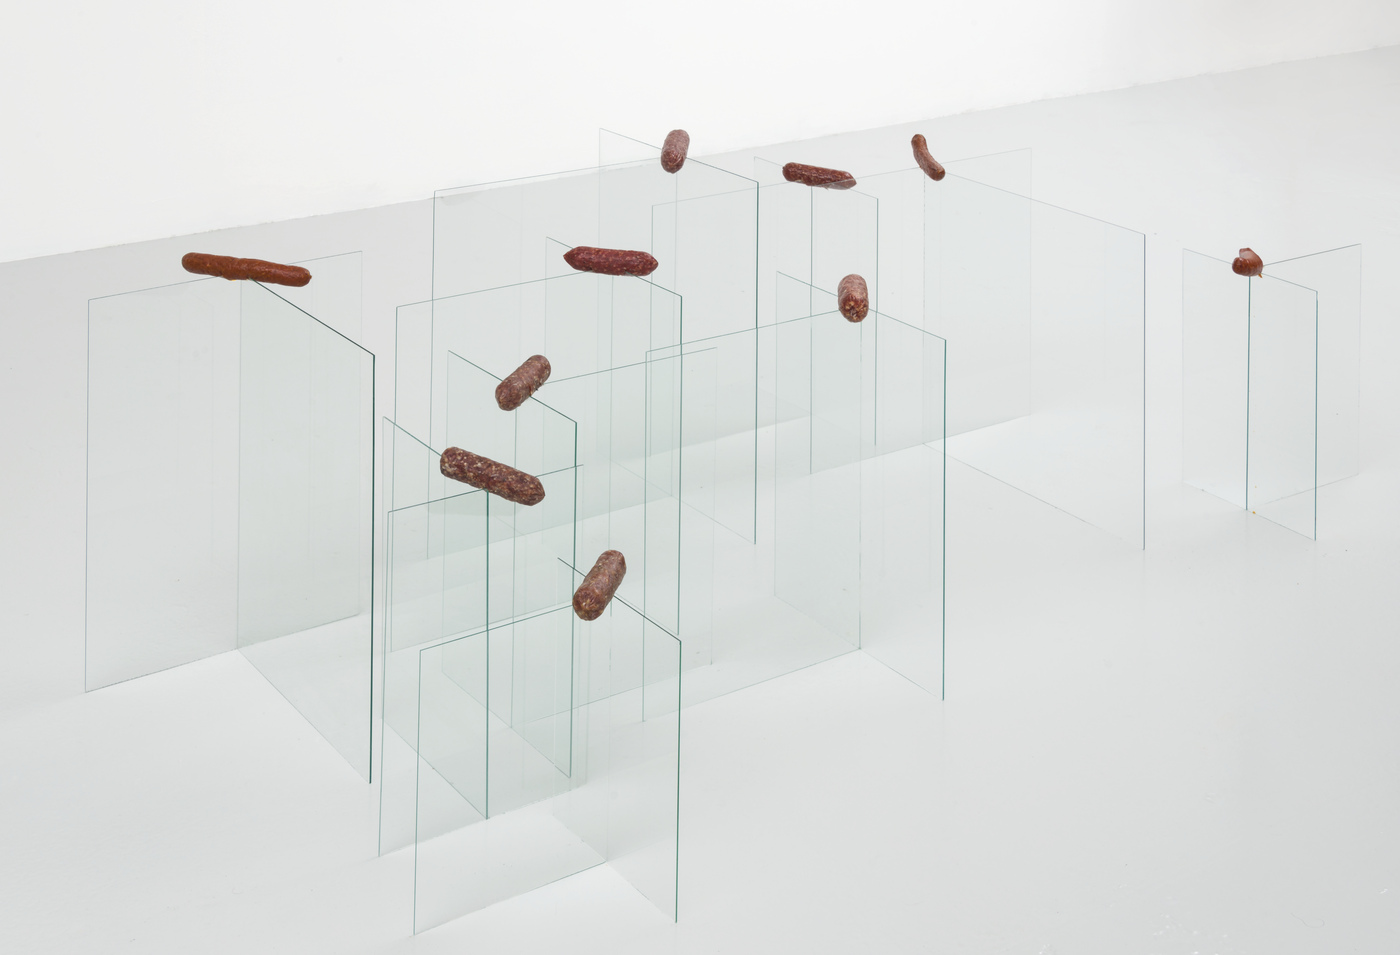 Christian Tedeschi - 20 Panes of Glass Buttressed by 10 Salami 1